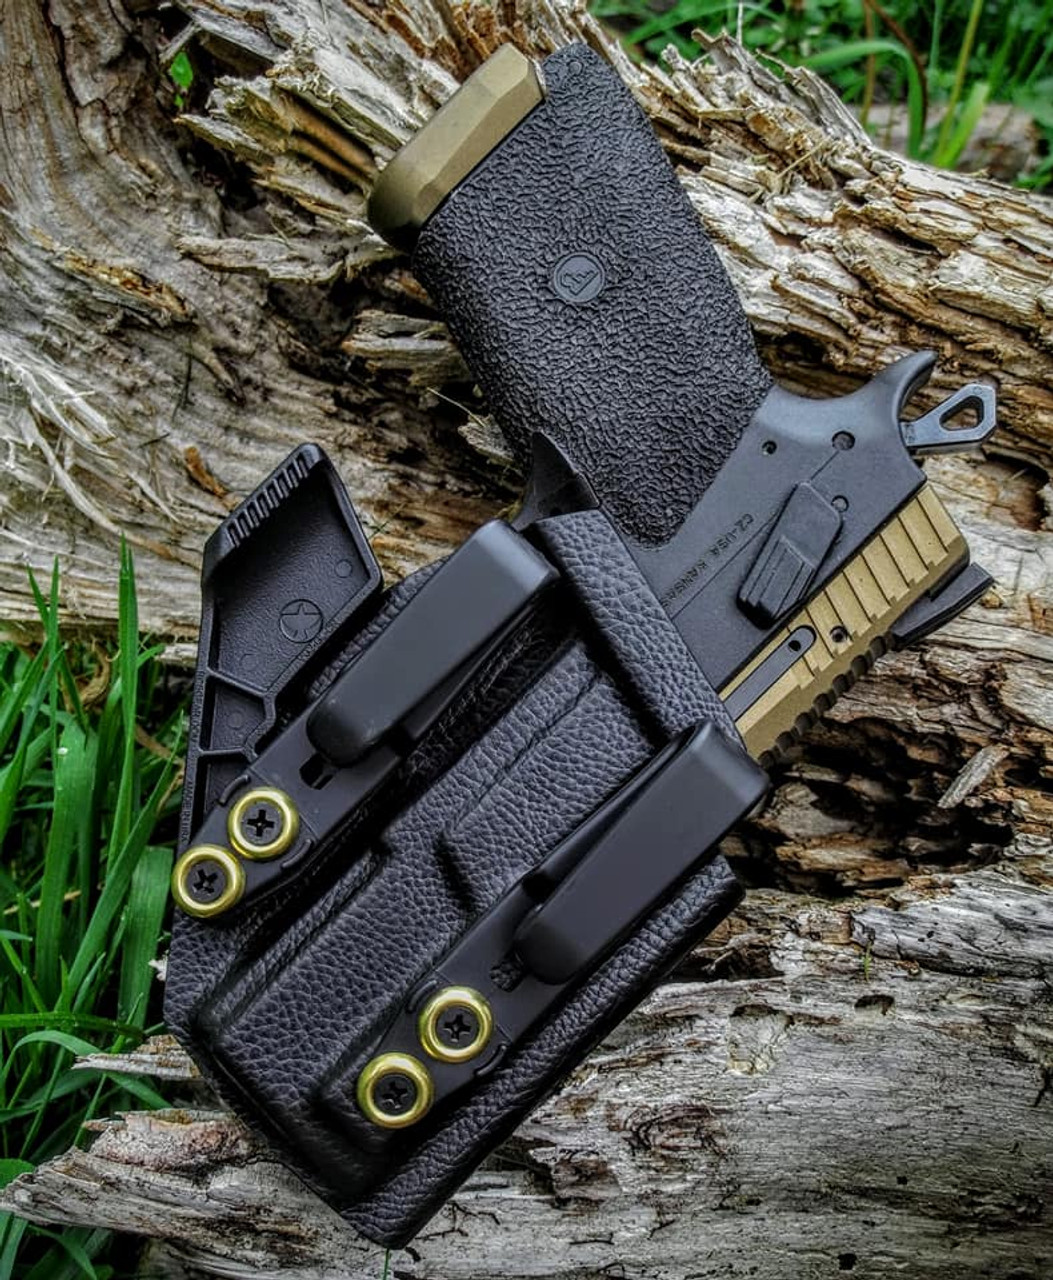 CZ P-07 Dual Hook Appendix Carry Holster